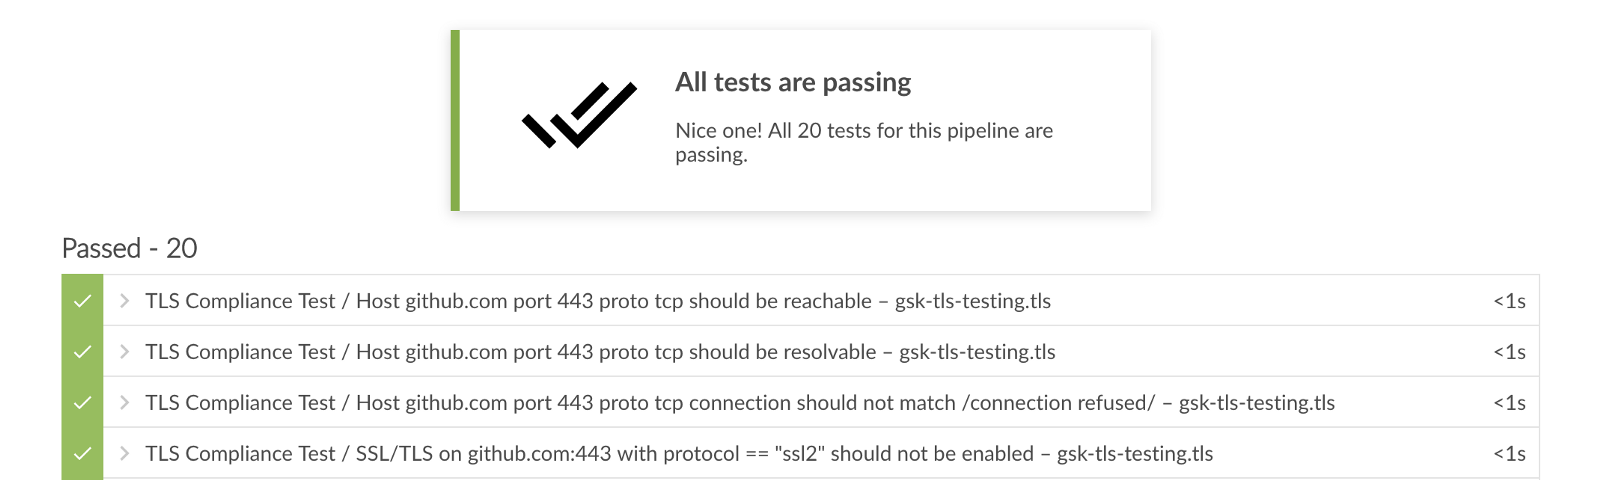 Jenkins test tab showing the results of InSpec tests.